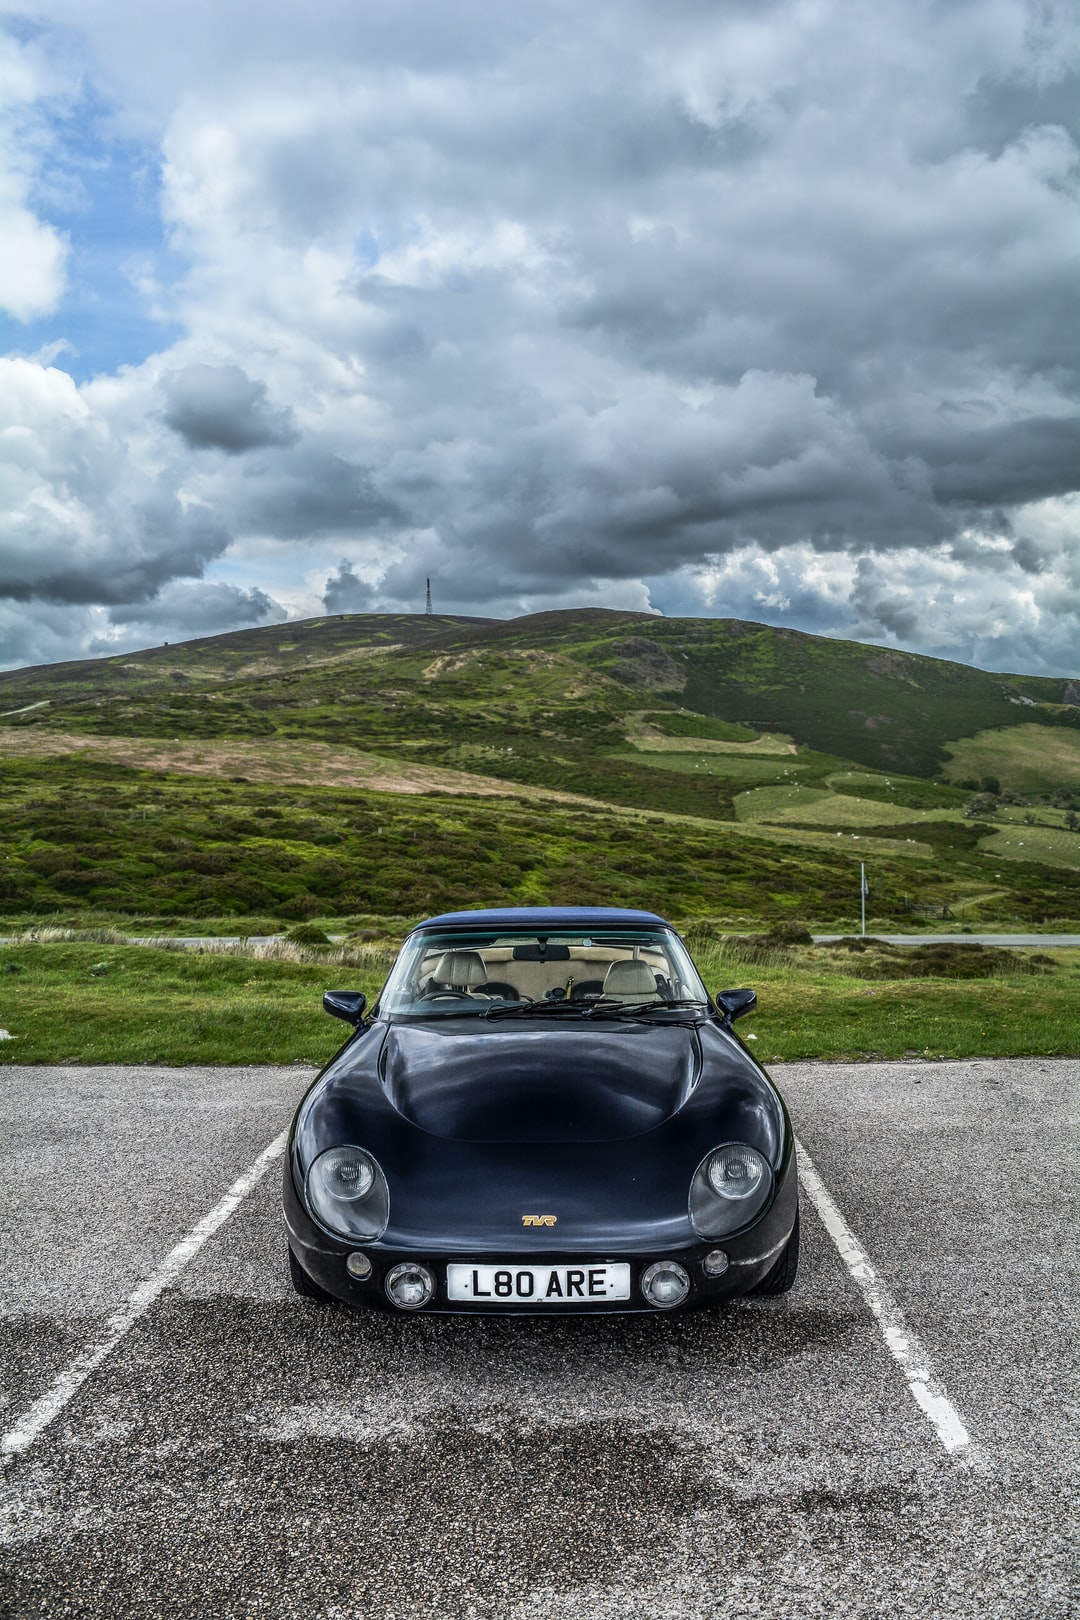 A lonely TVR Griffith...